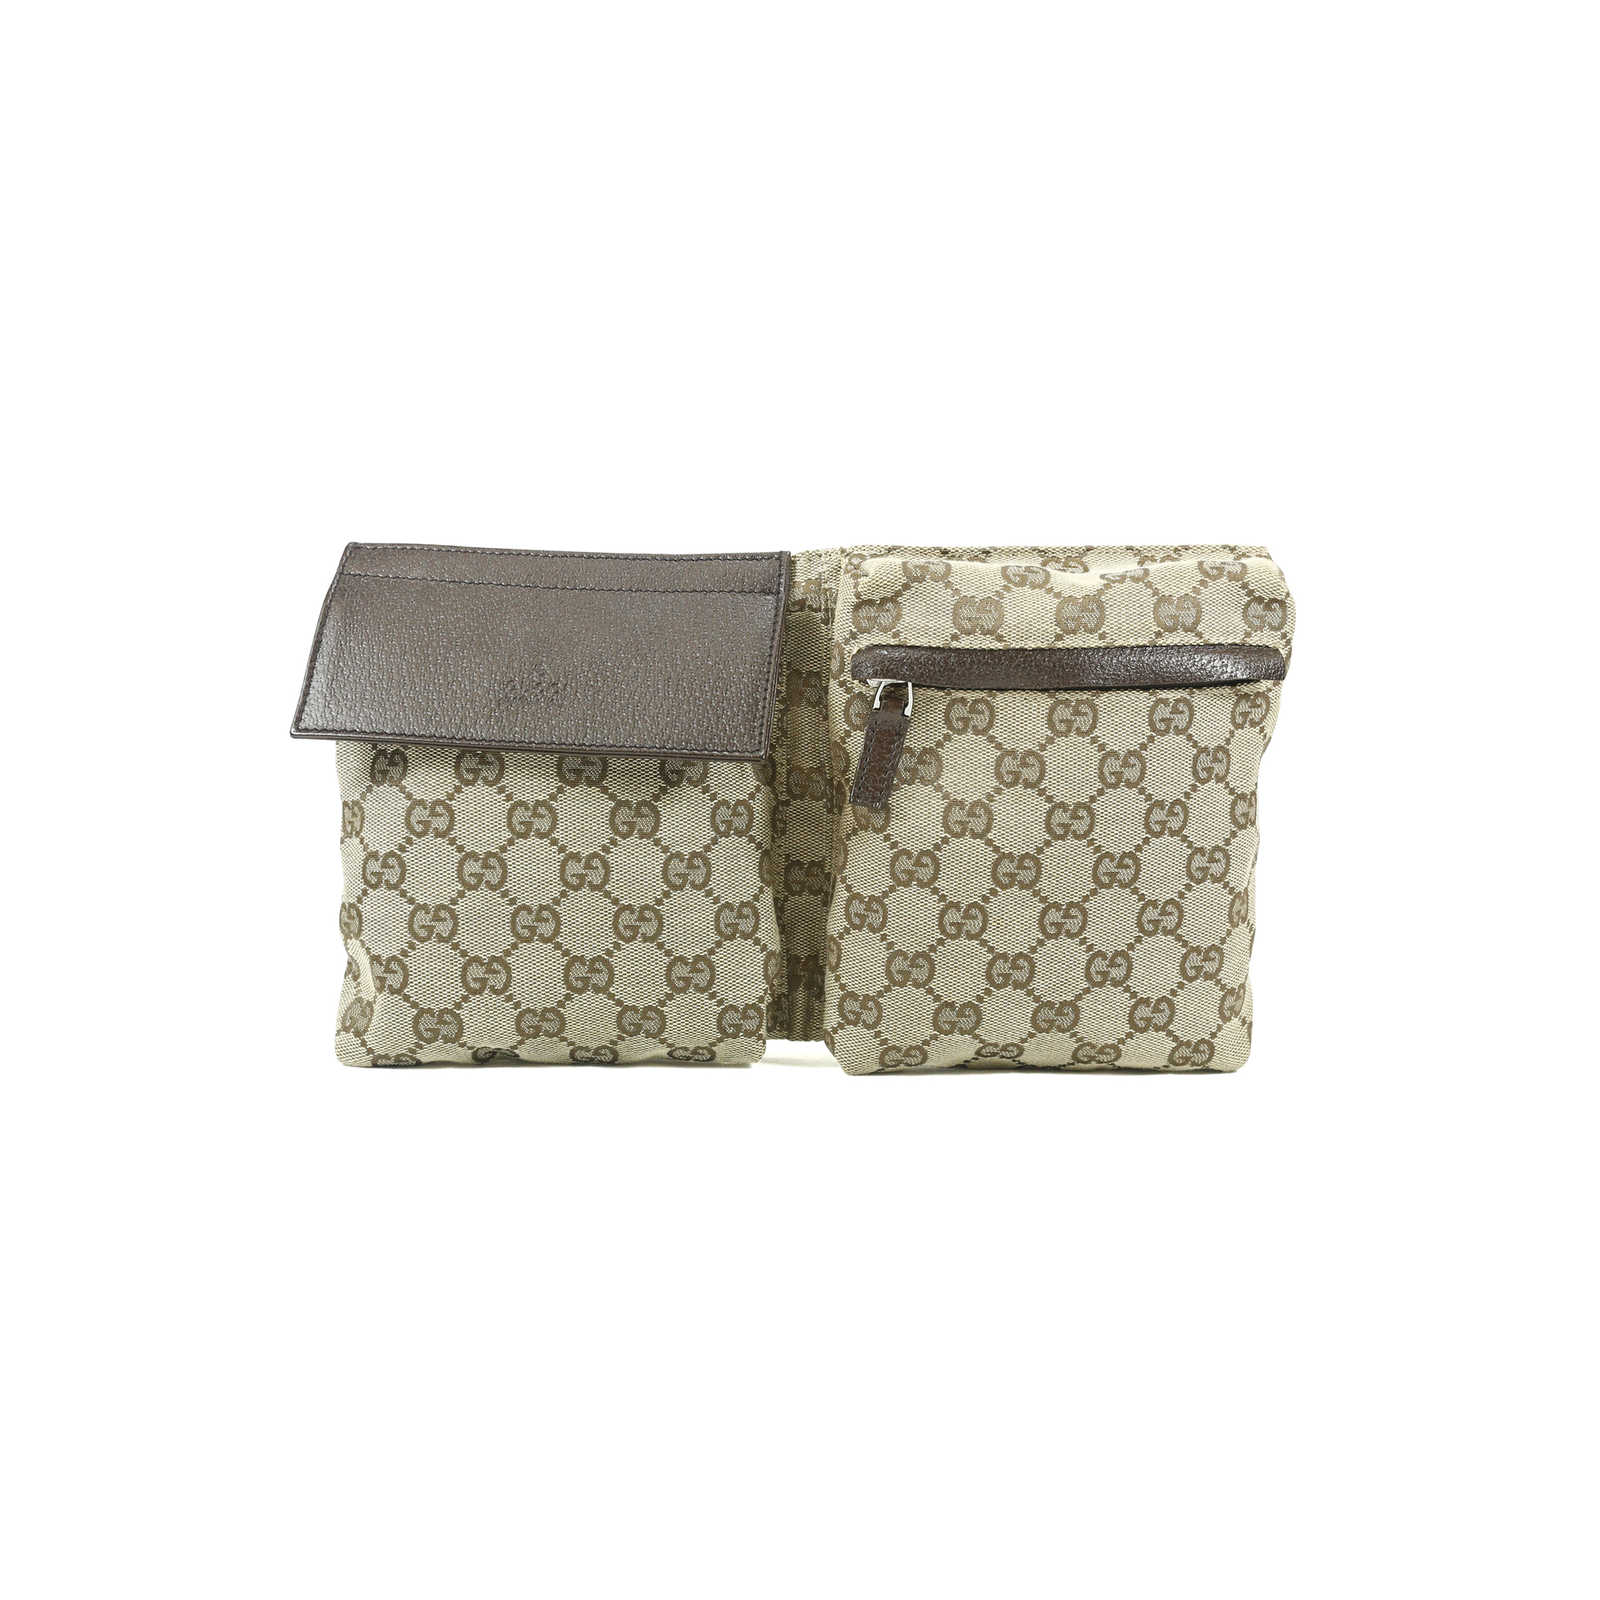 bc1473aac018 Tap to expand · Authentic Second Hand Gucci Monogram Belt Bag  (PSS-004-00072) - Thumbnail ...